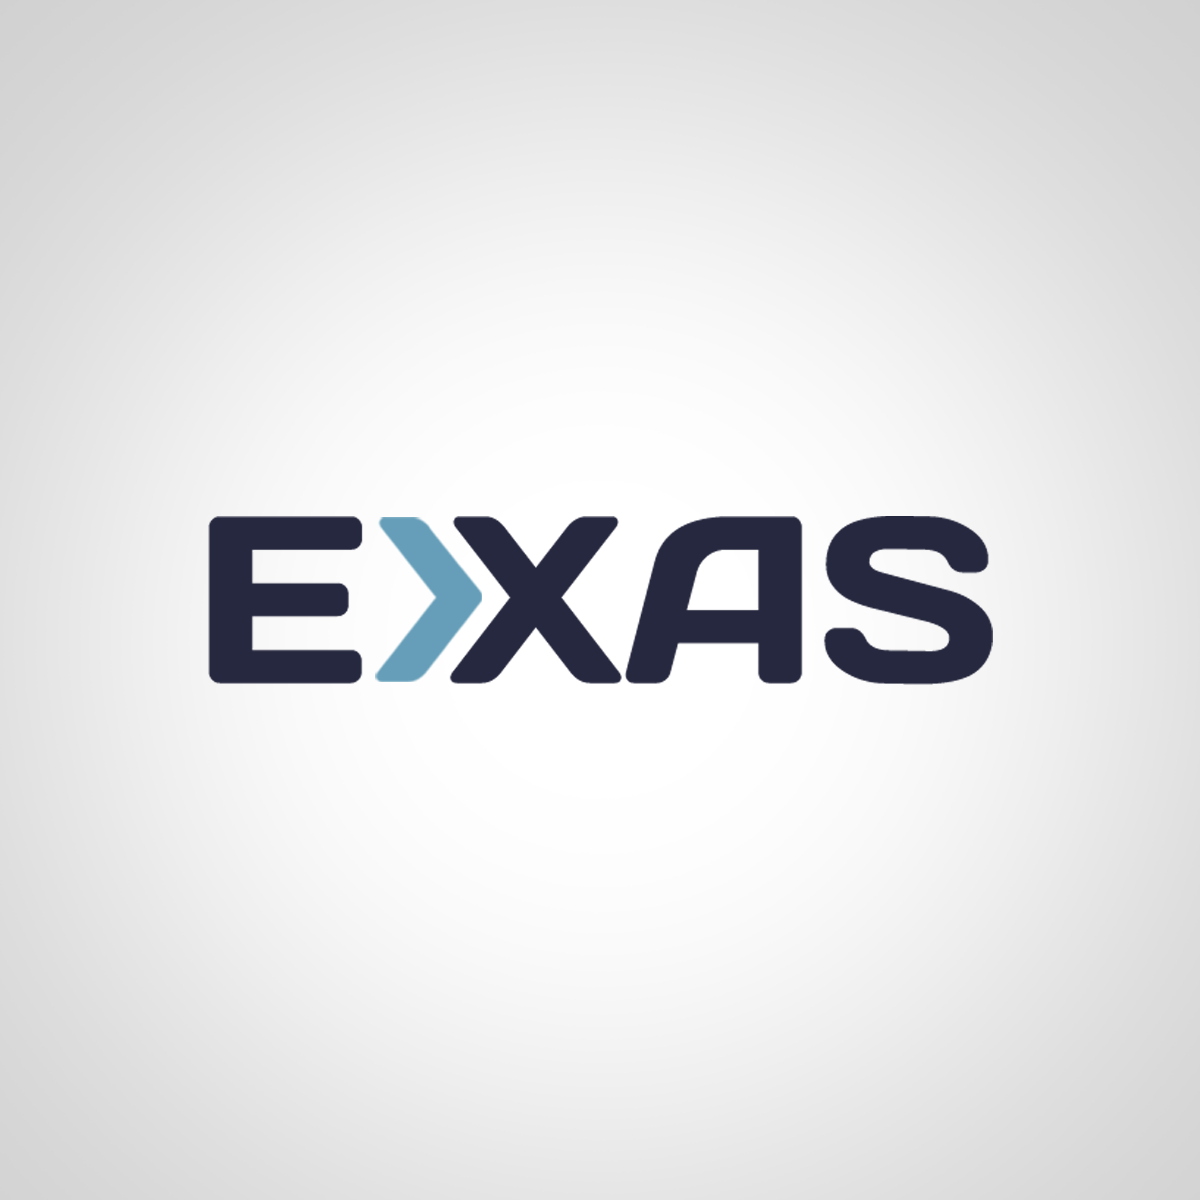 Exxas Business